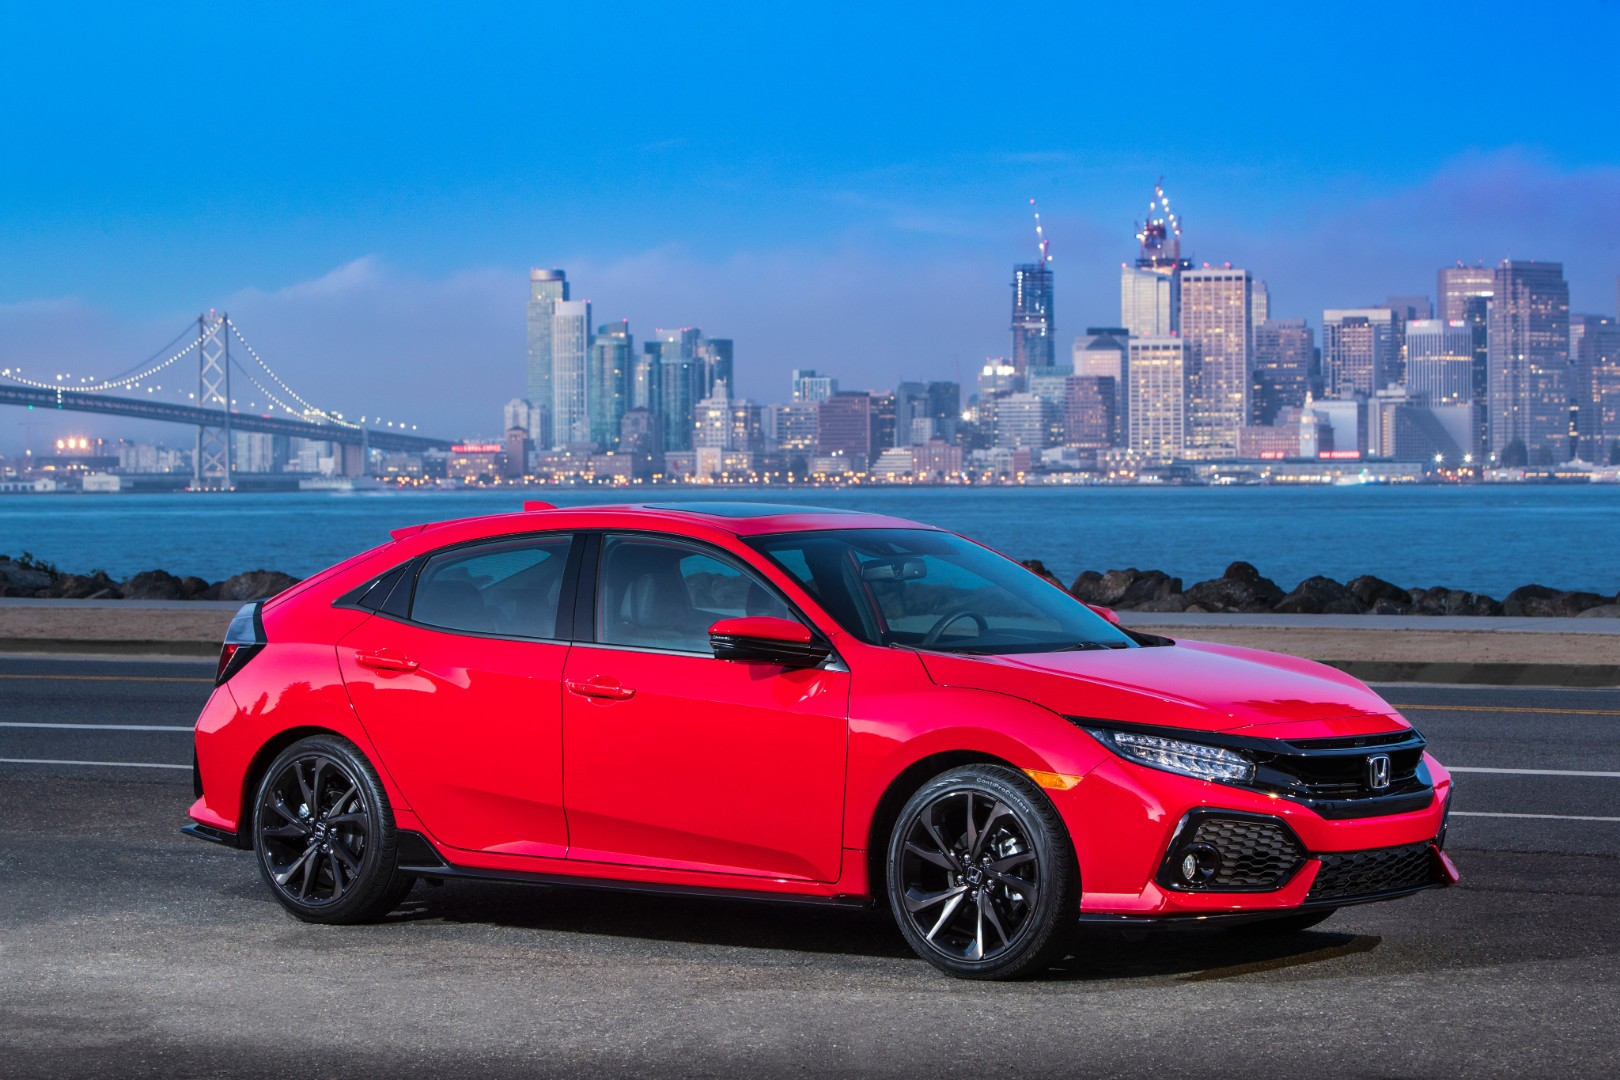 Image Result For Honda Civic Coupe Price In Uae